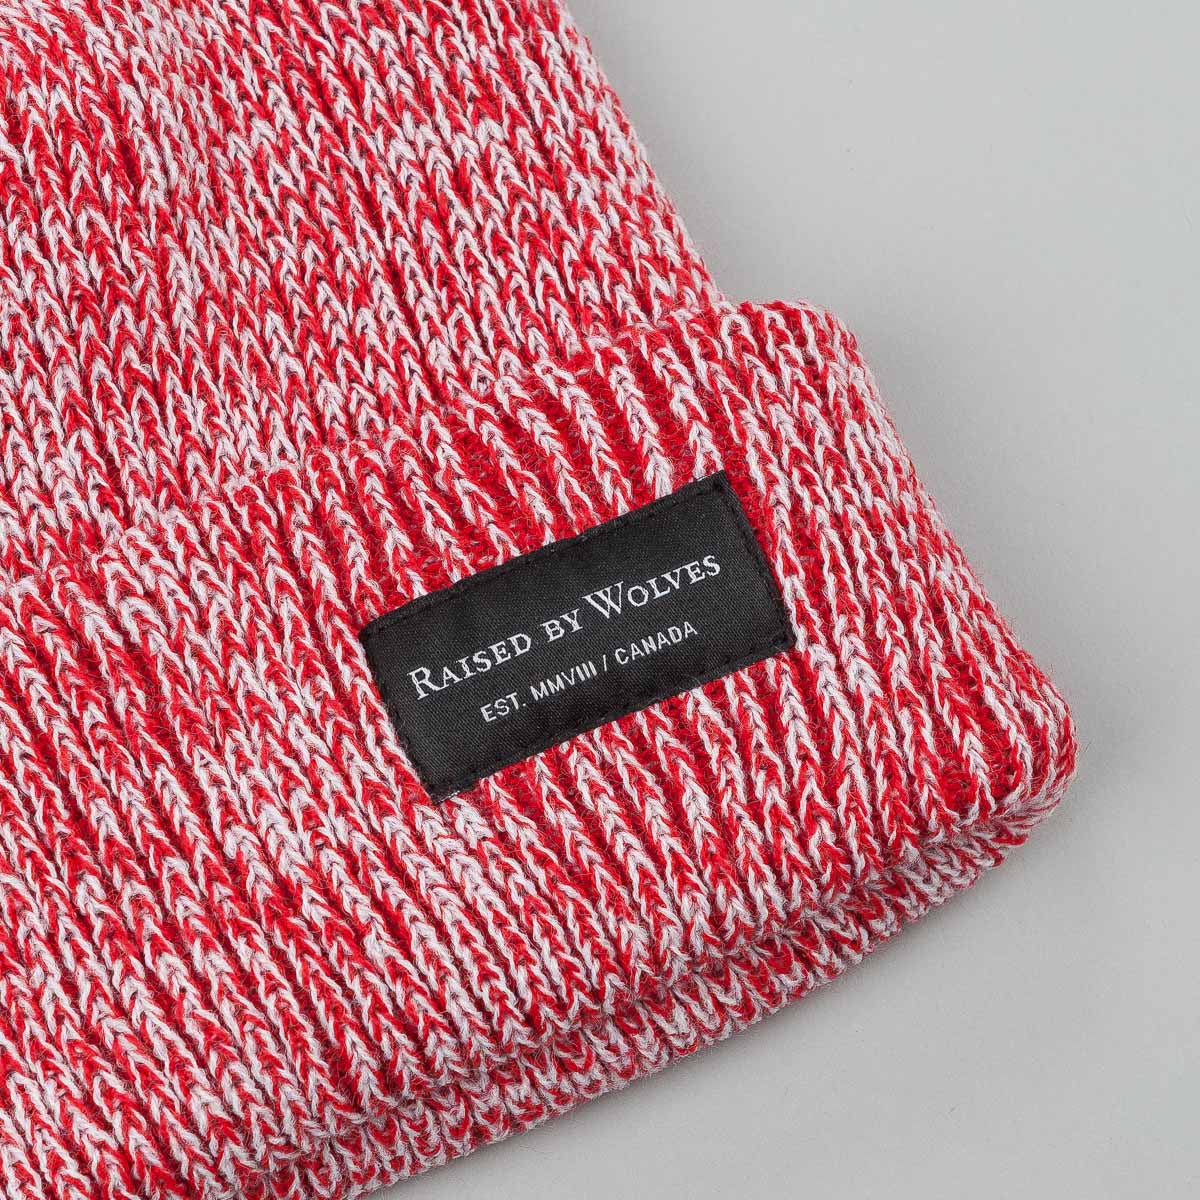 Raised By Wolves Alert Watch Beanie Hat - White / Red